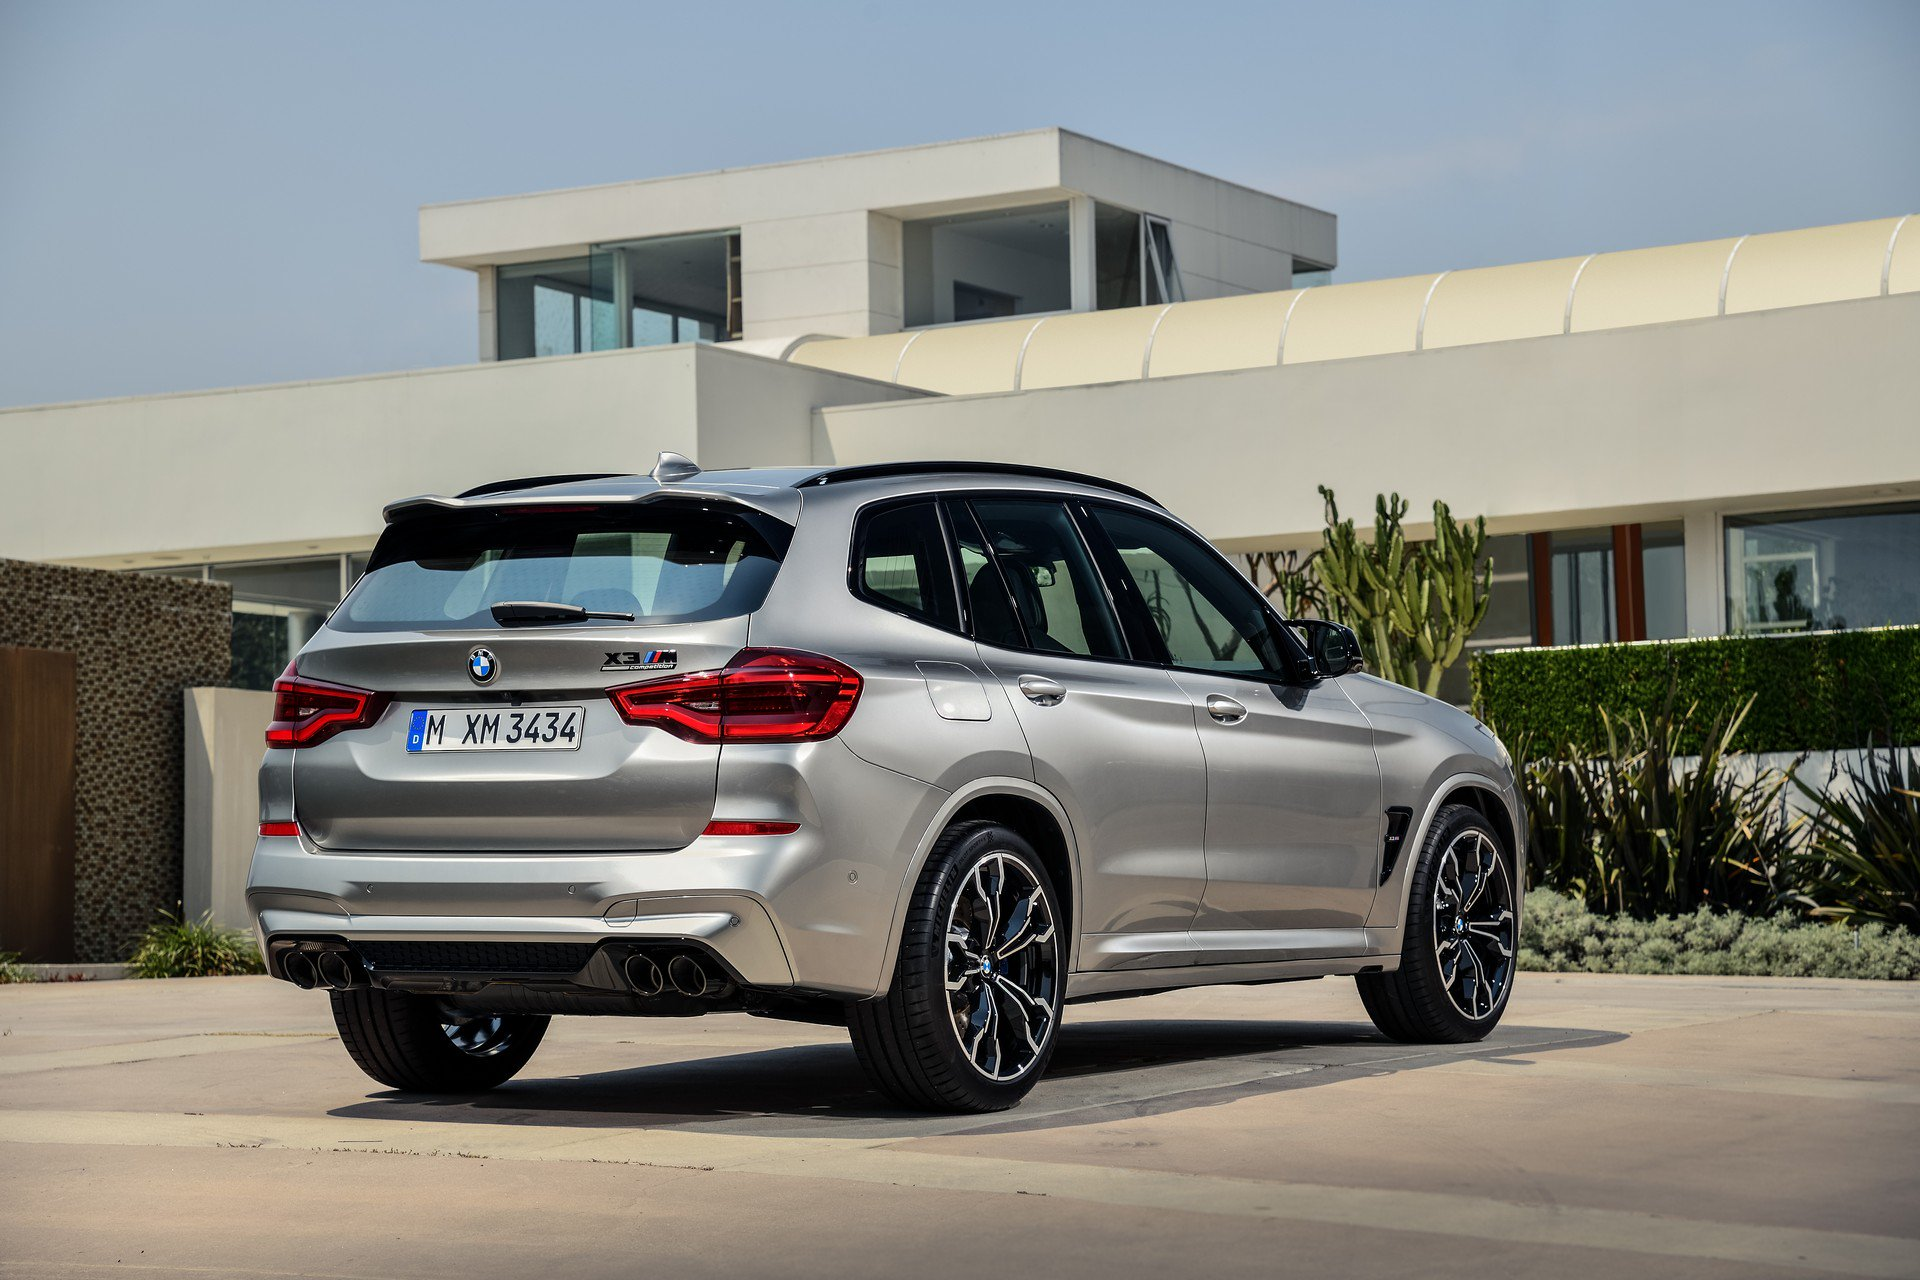 2020 BMW X3 M 2 | Arabs Auto